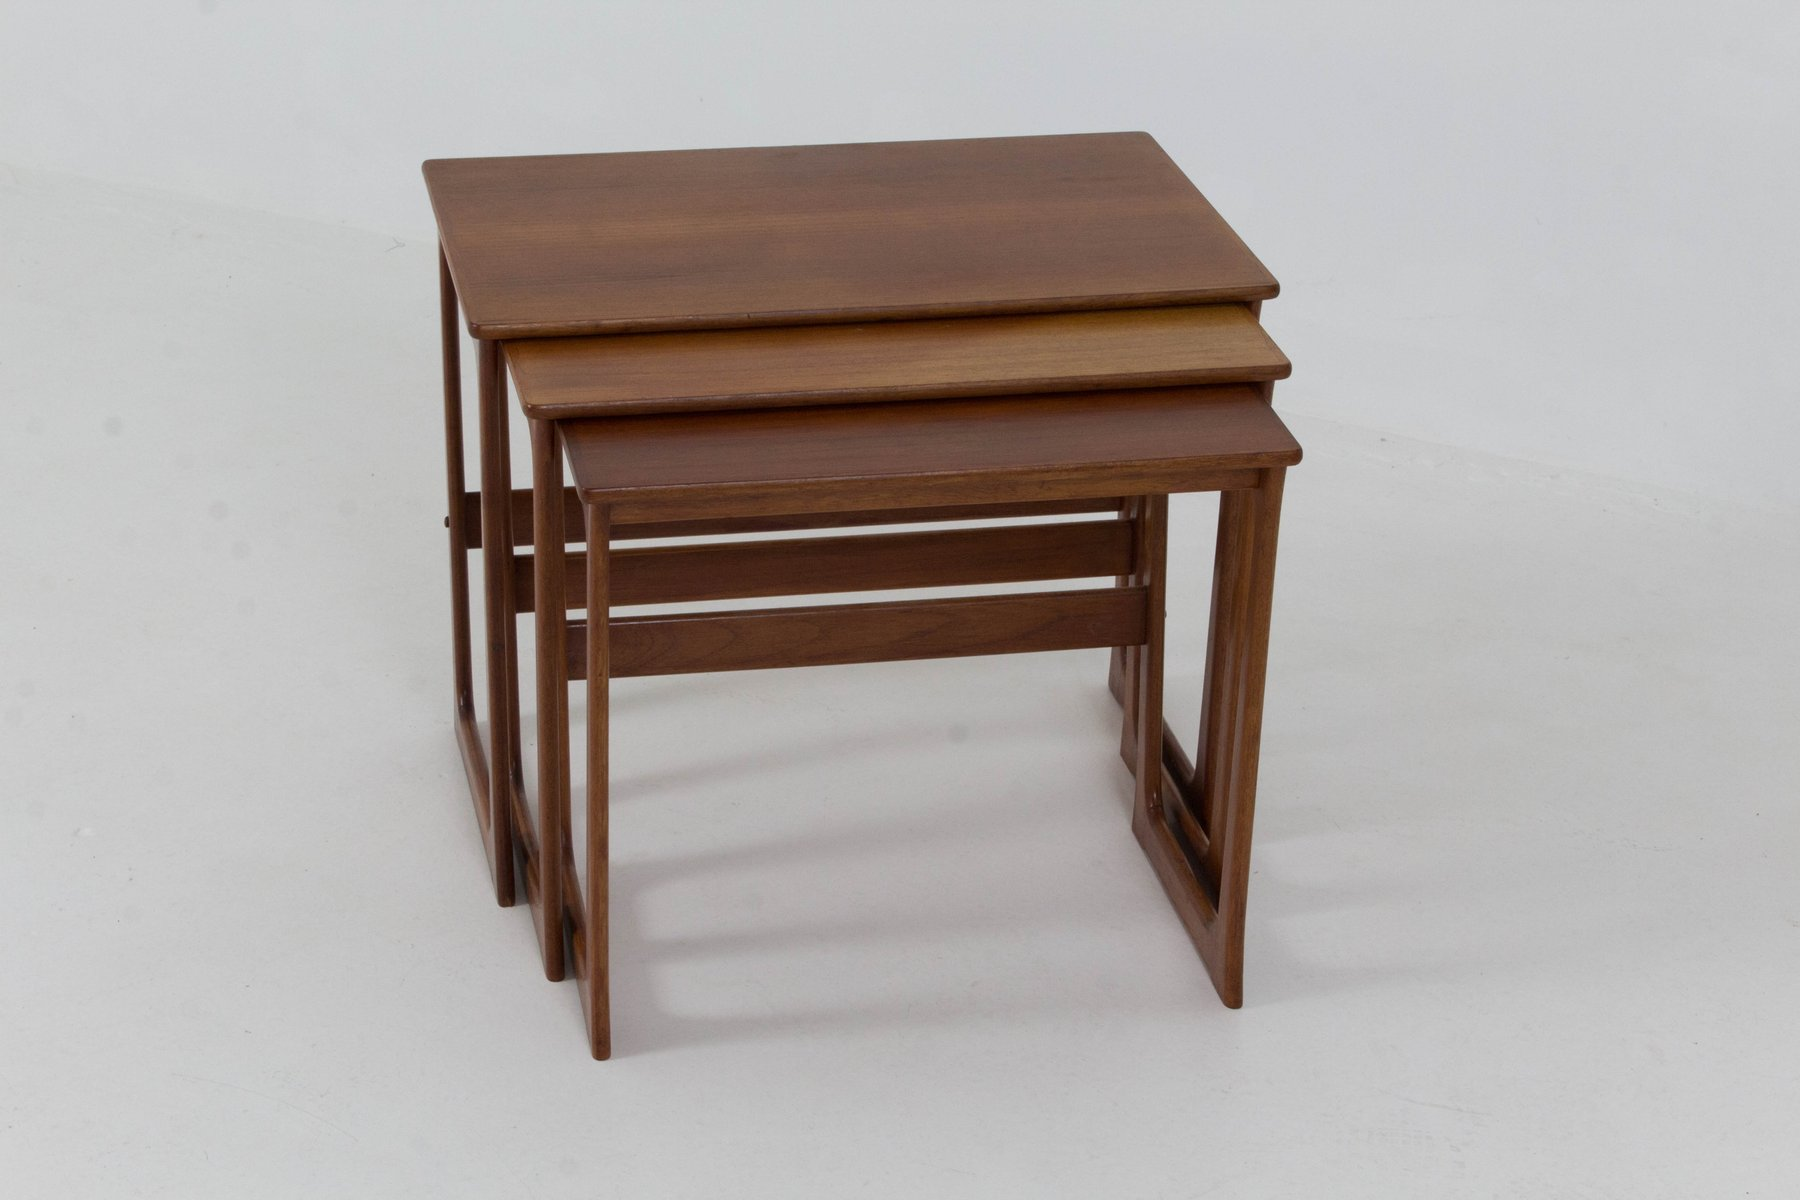 midcentury danish modern nesting tables by johannes andersen  - midcentury danish modern nesting tables by johannes andersen s